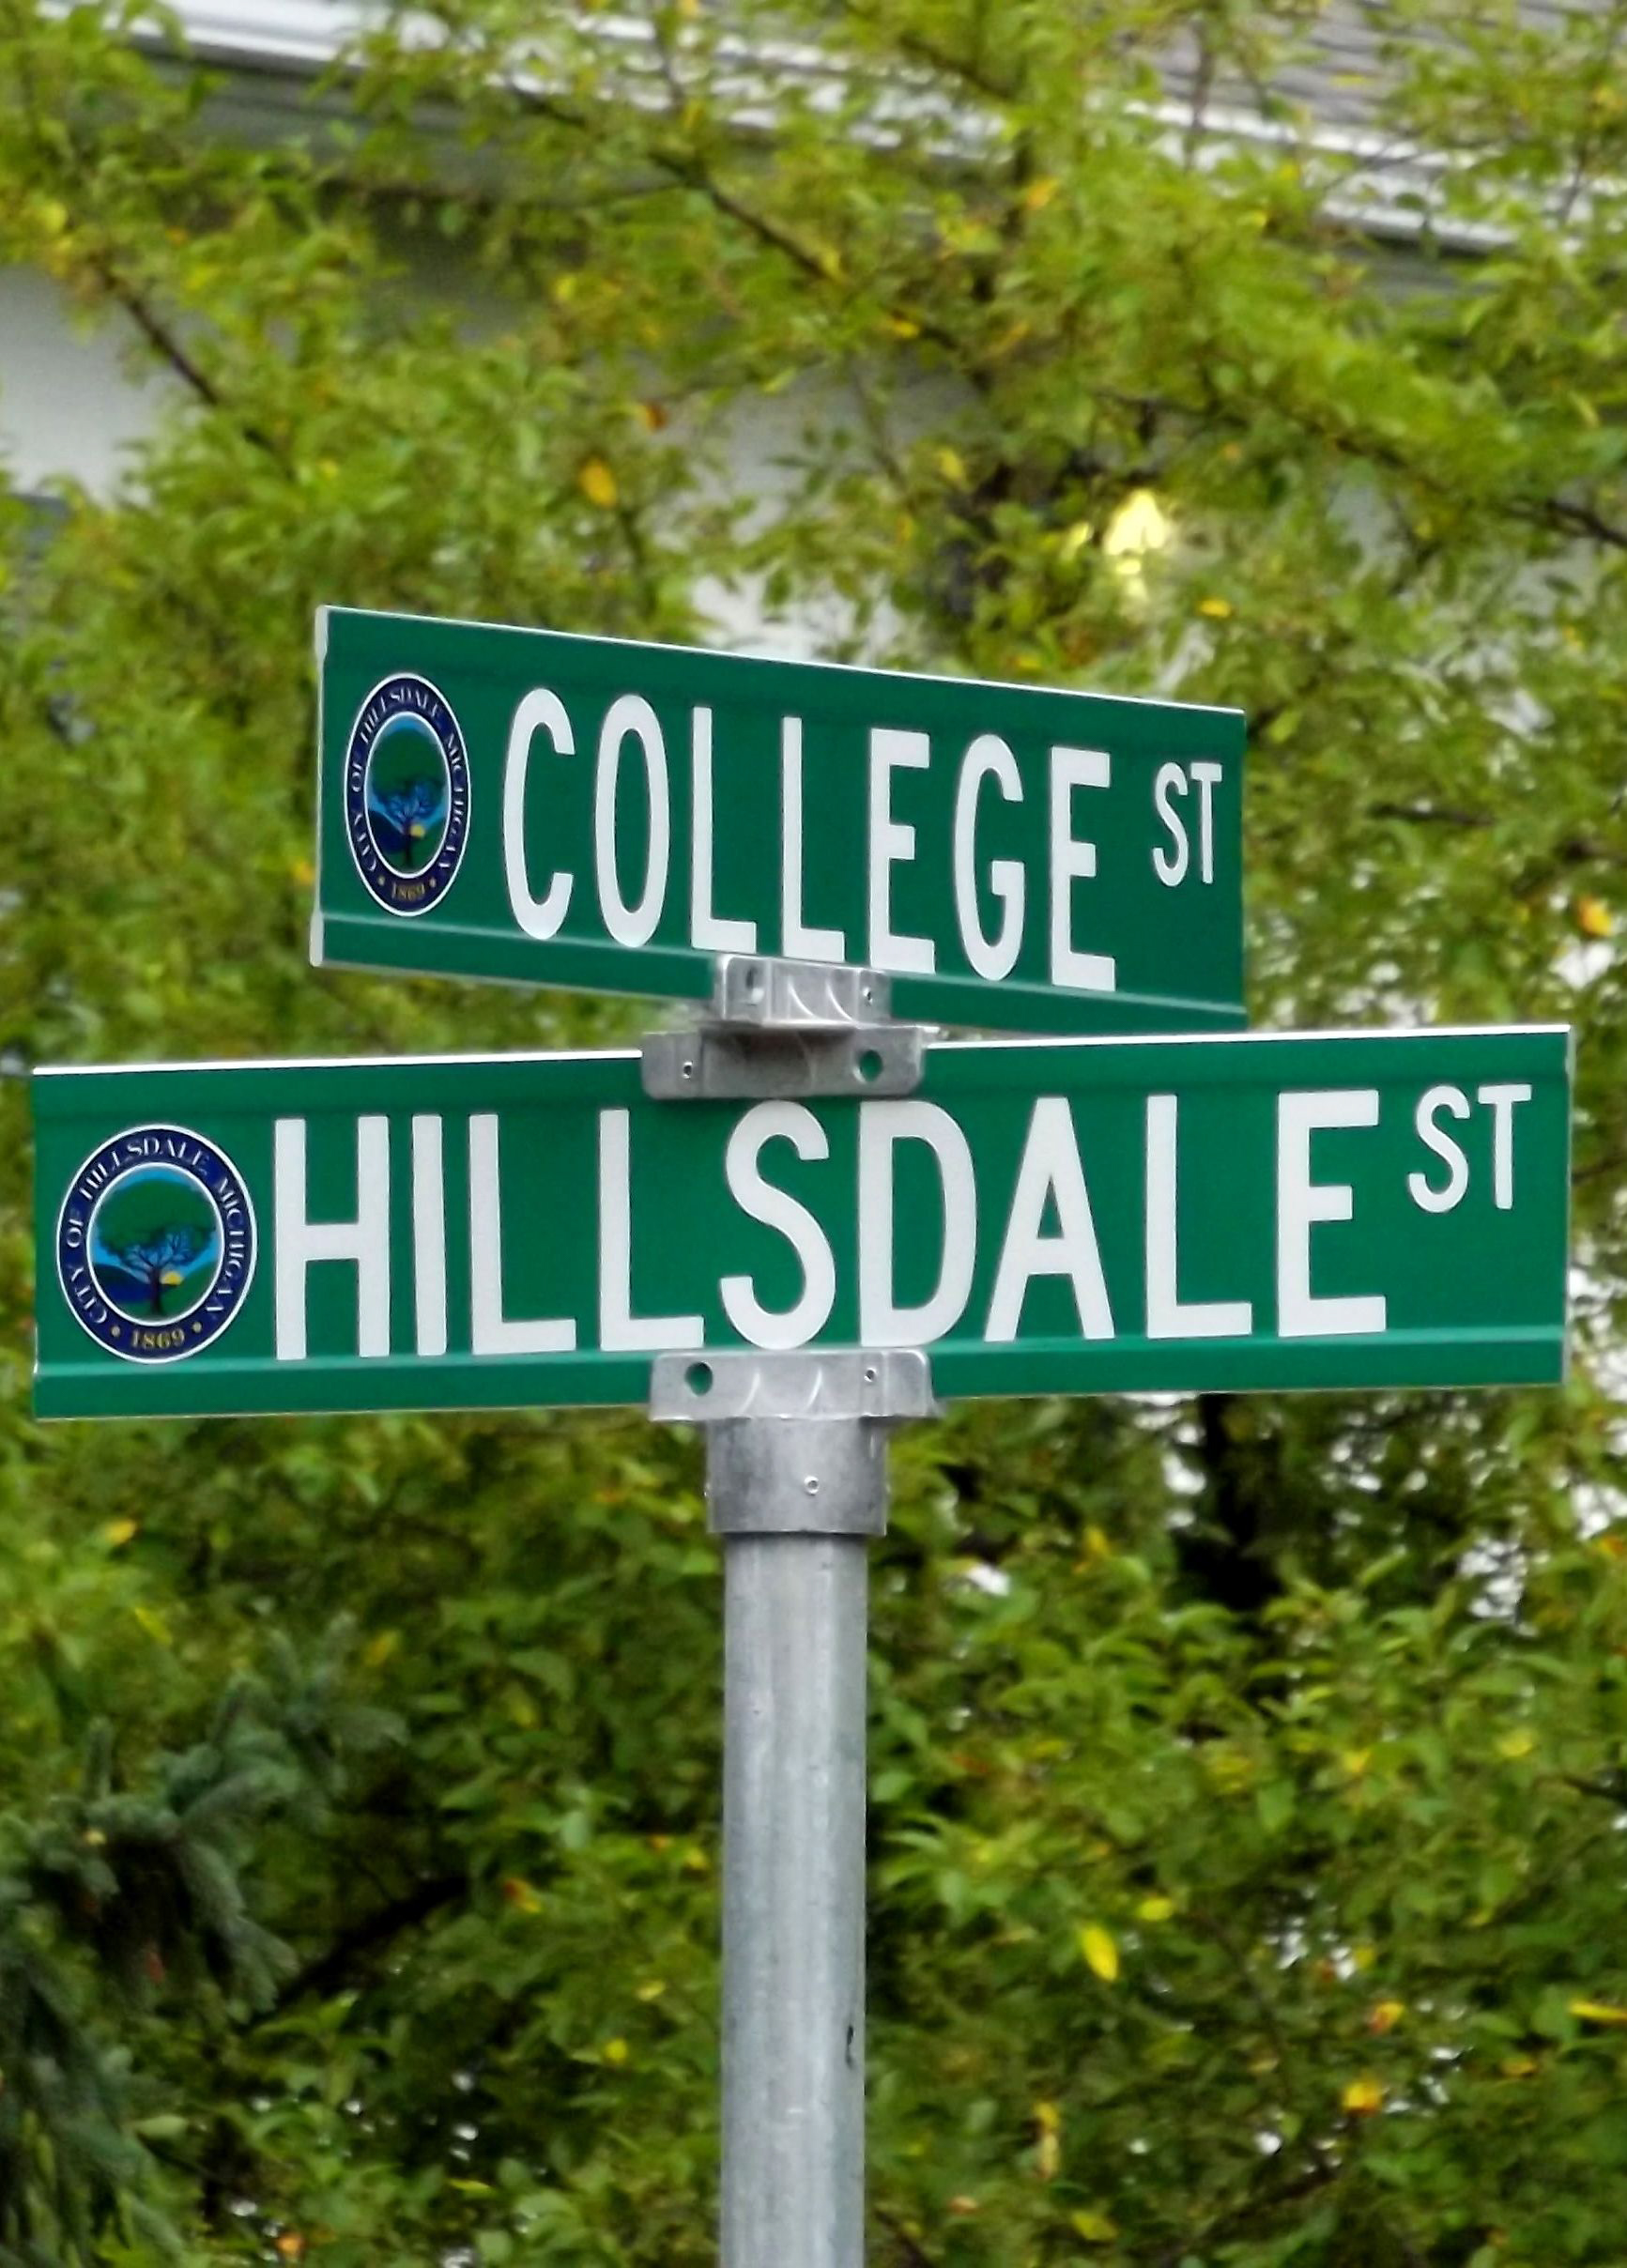 Green street signs with white lettering depicting the corner of College and Hillsdale streets